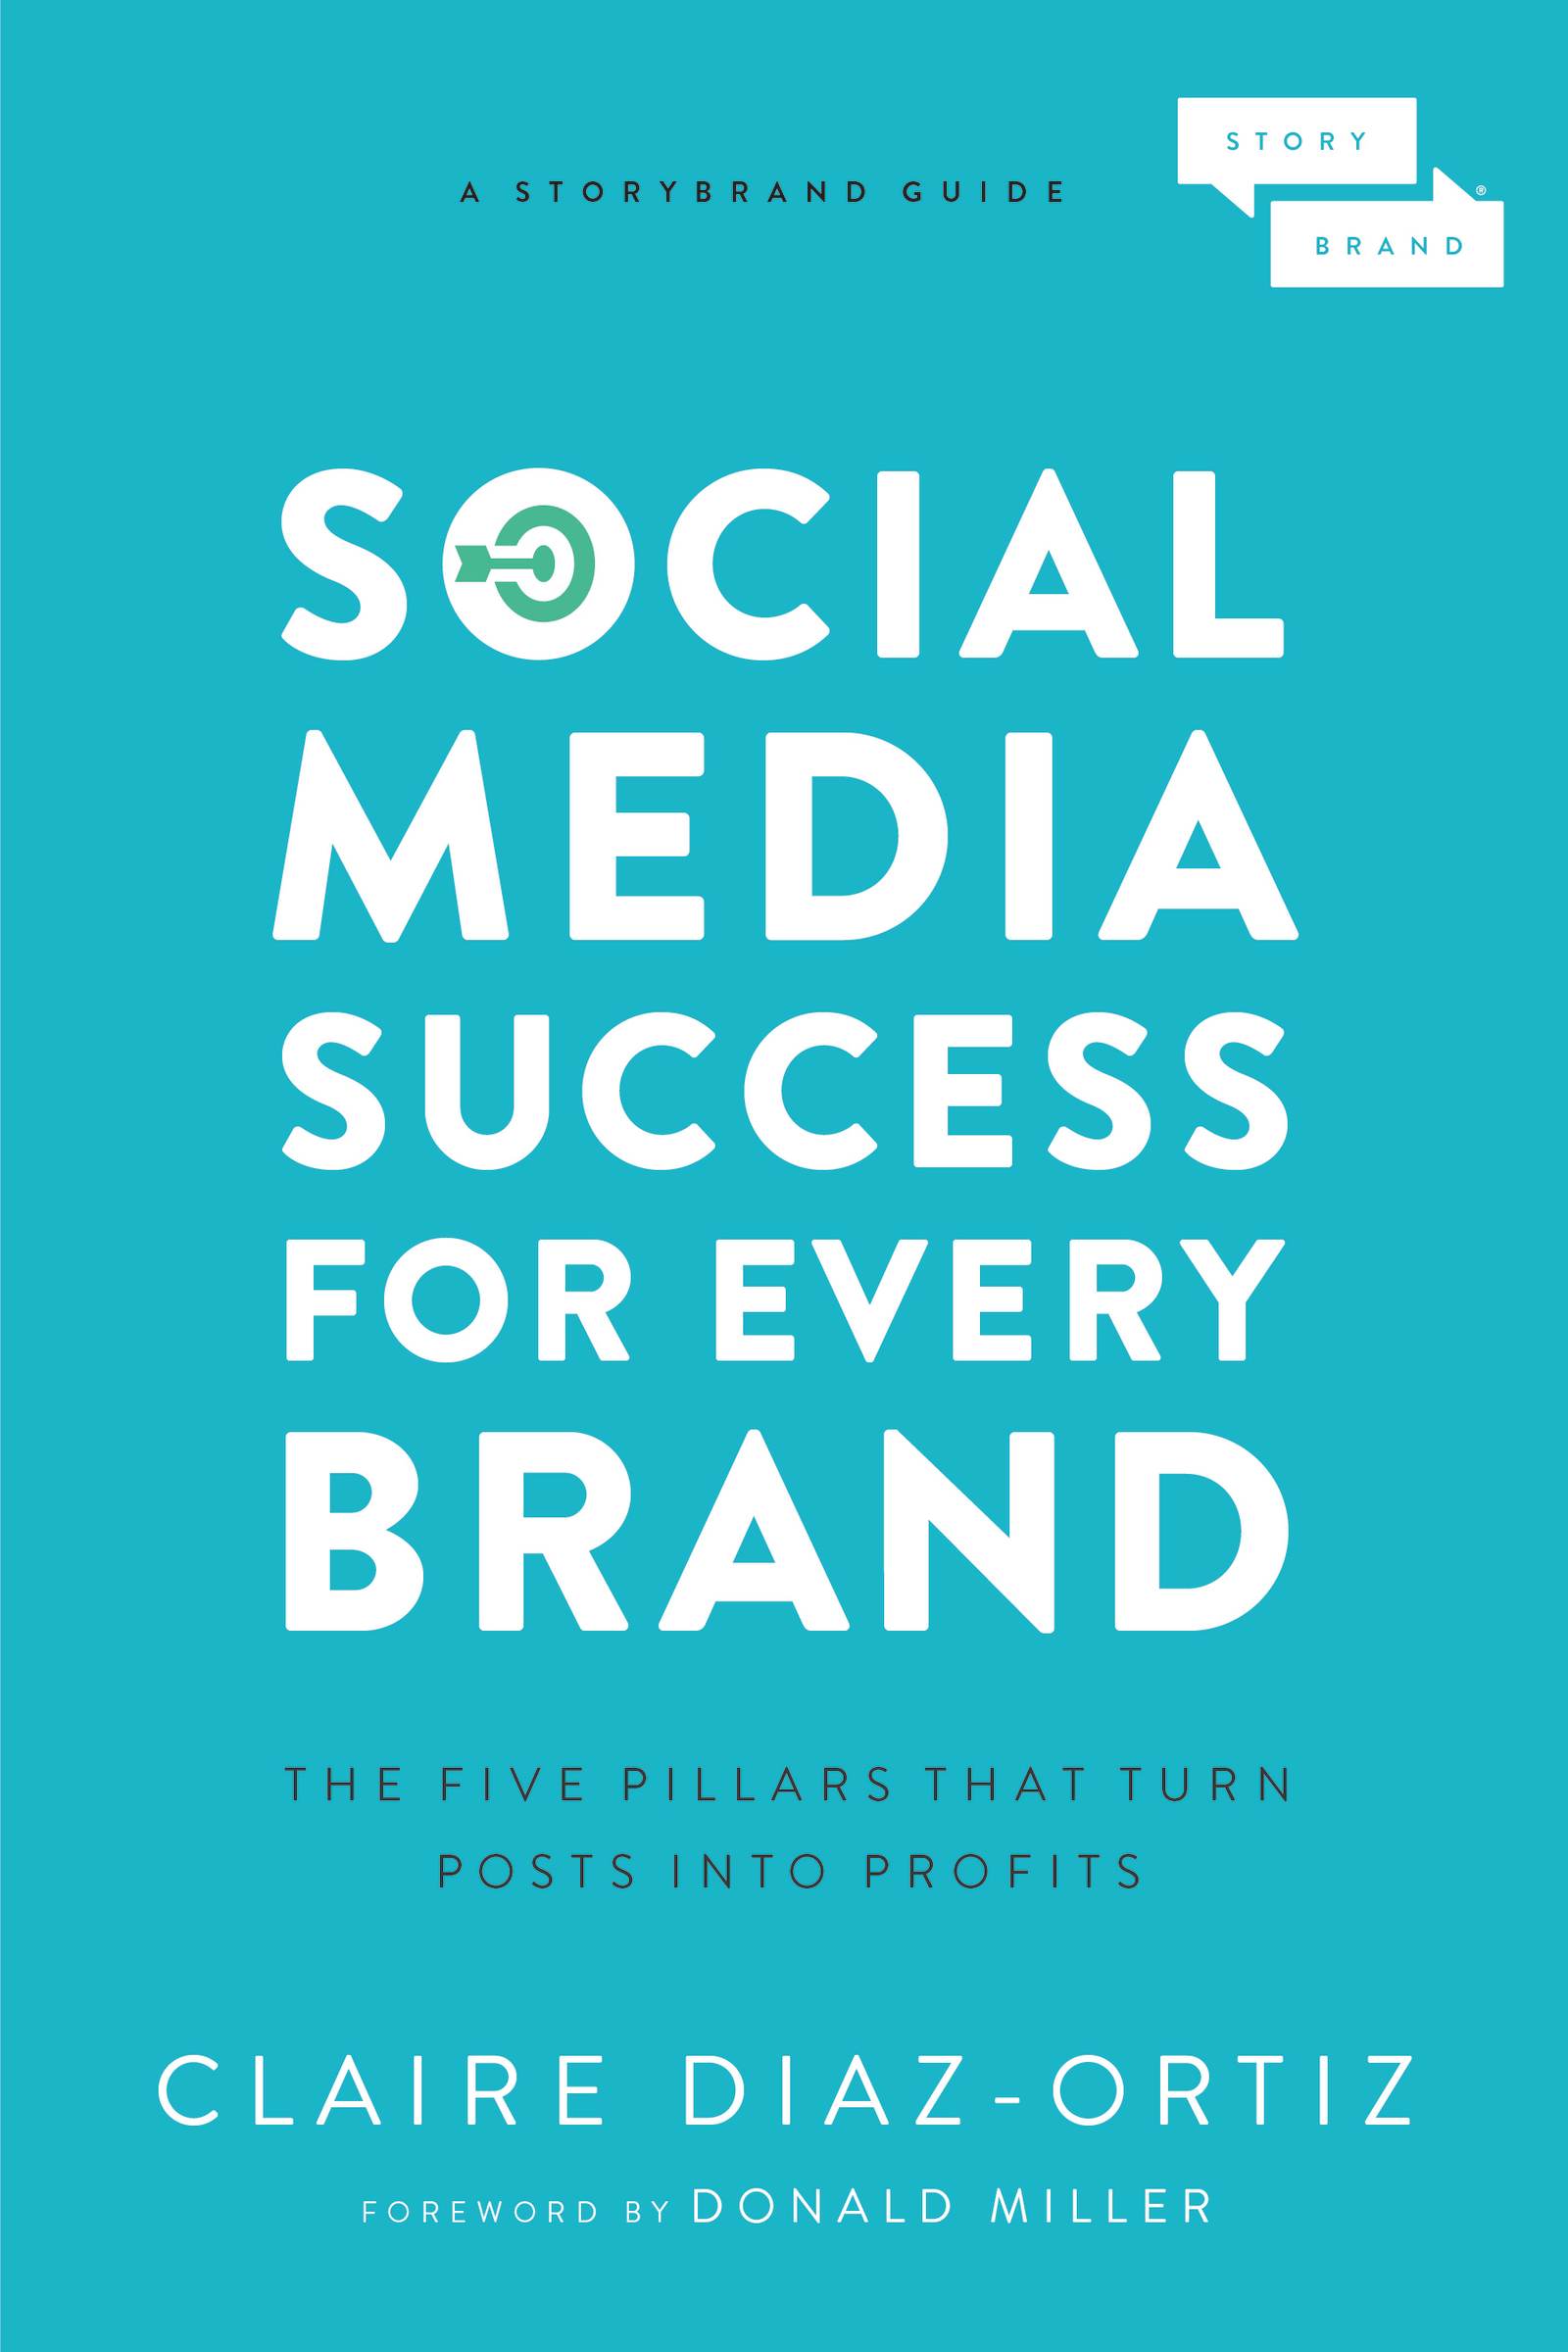 Social media success for every brand [electronic resource (downloadable eBook)] : the five storybrand pillars that turn posts into profits